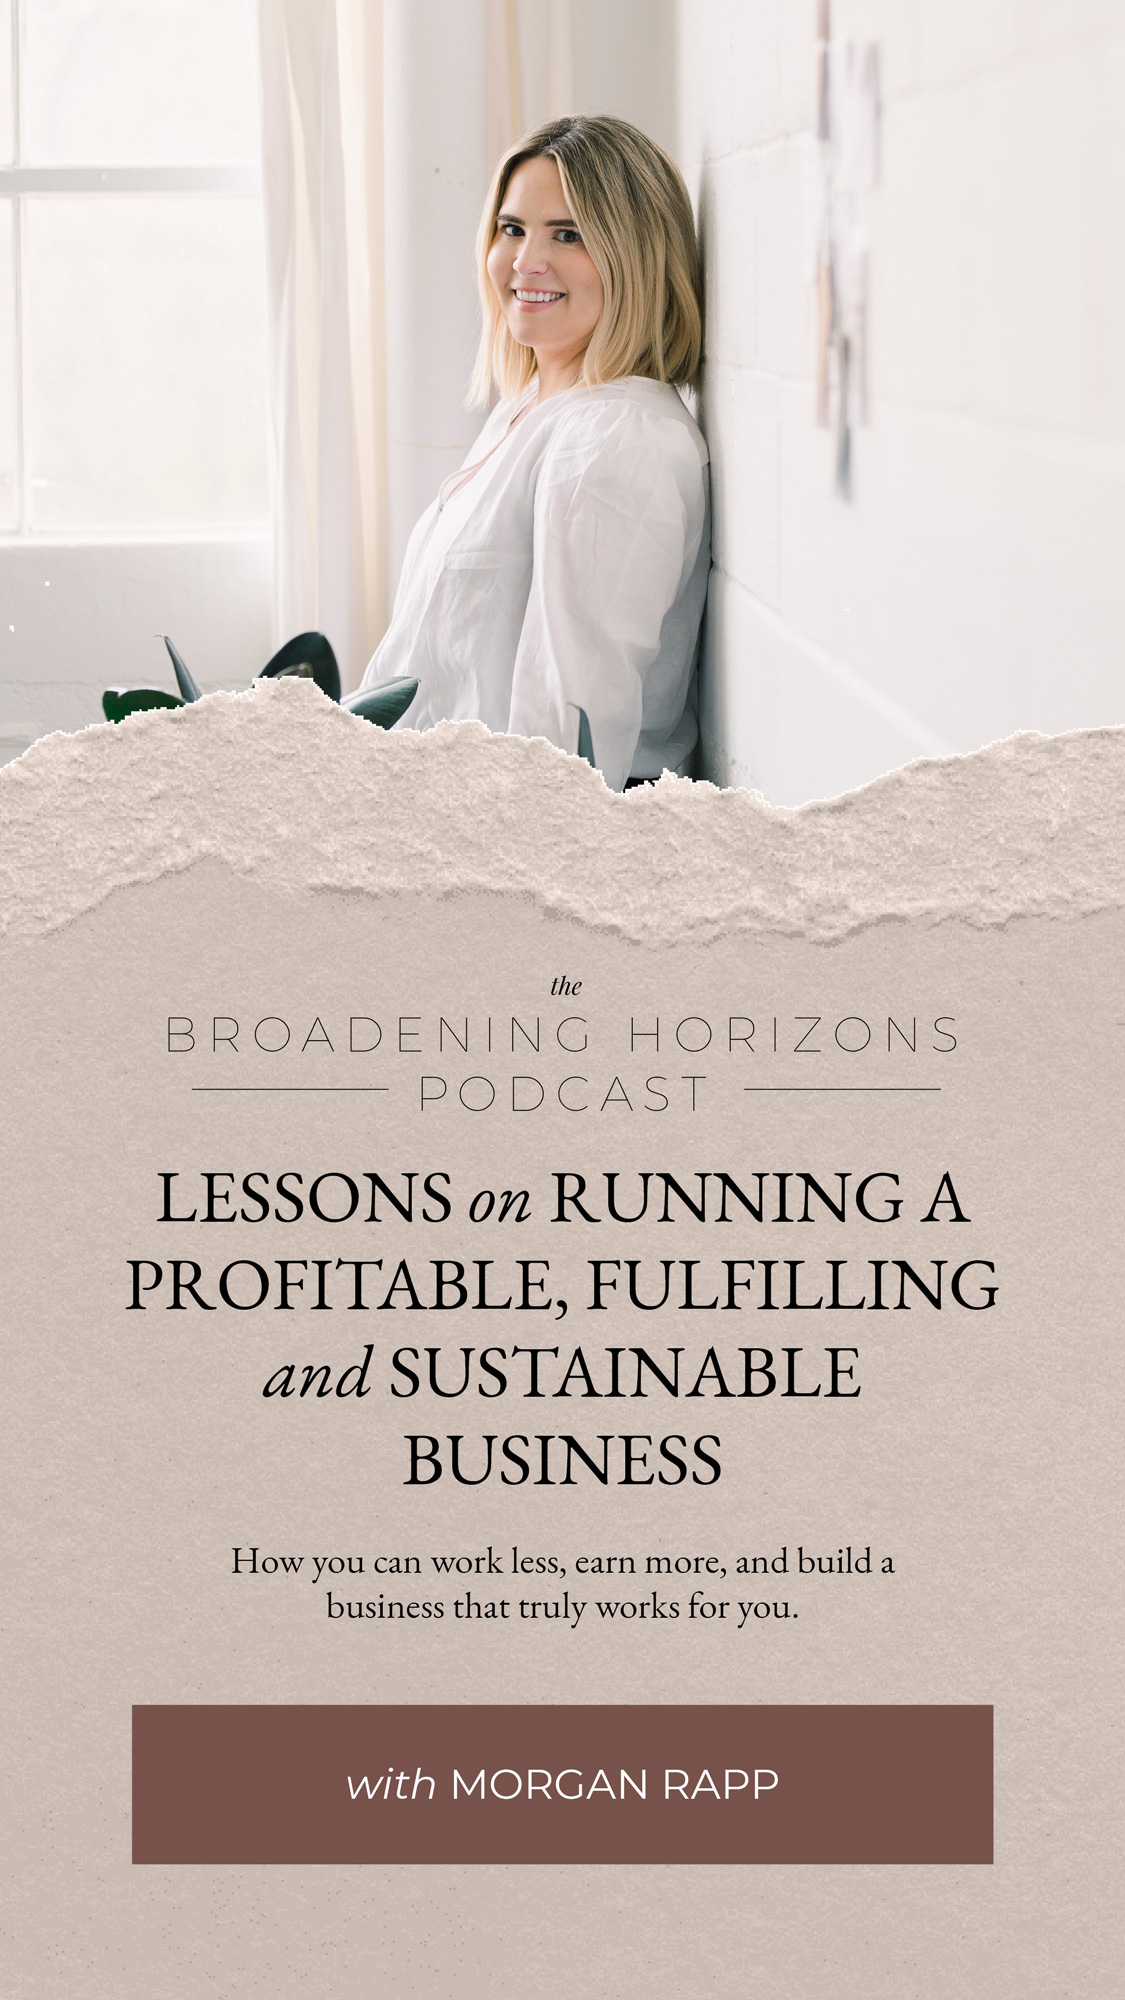 Lessons on Running a Profitable, Fulfilling, and Sustainable Business with Morgan Rapp from www.sweethorizonblog.com